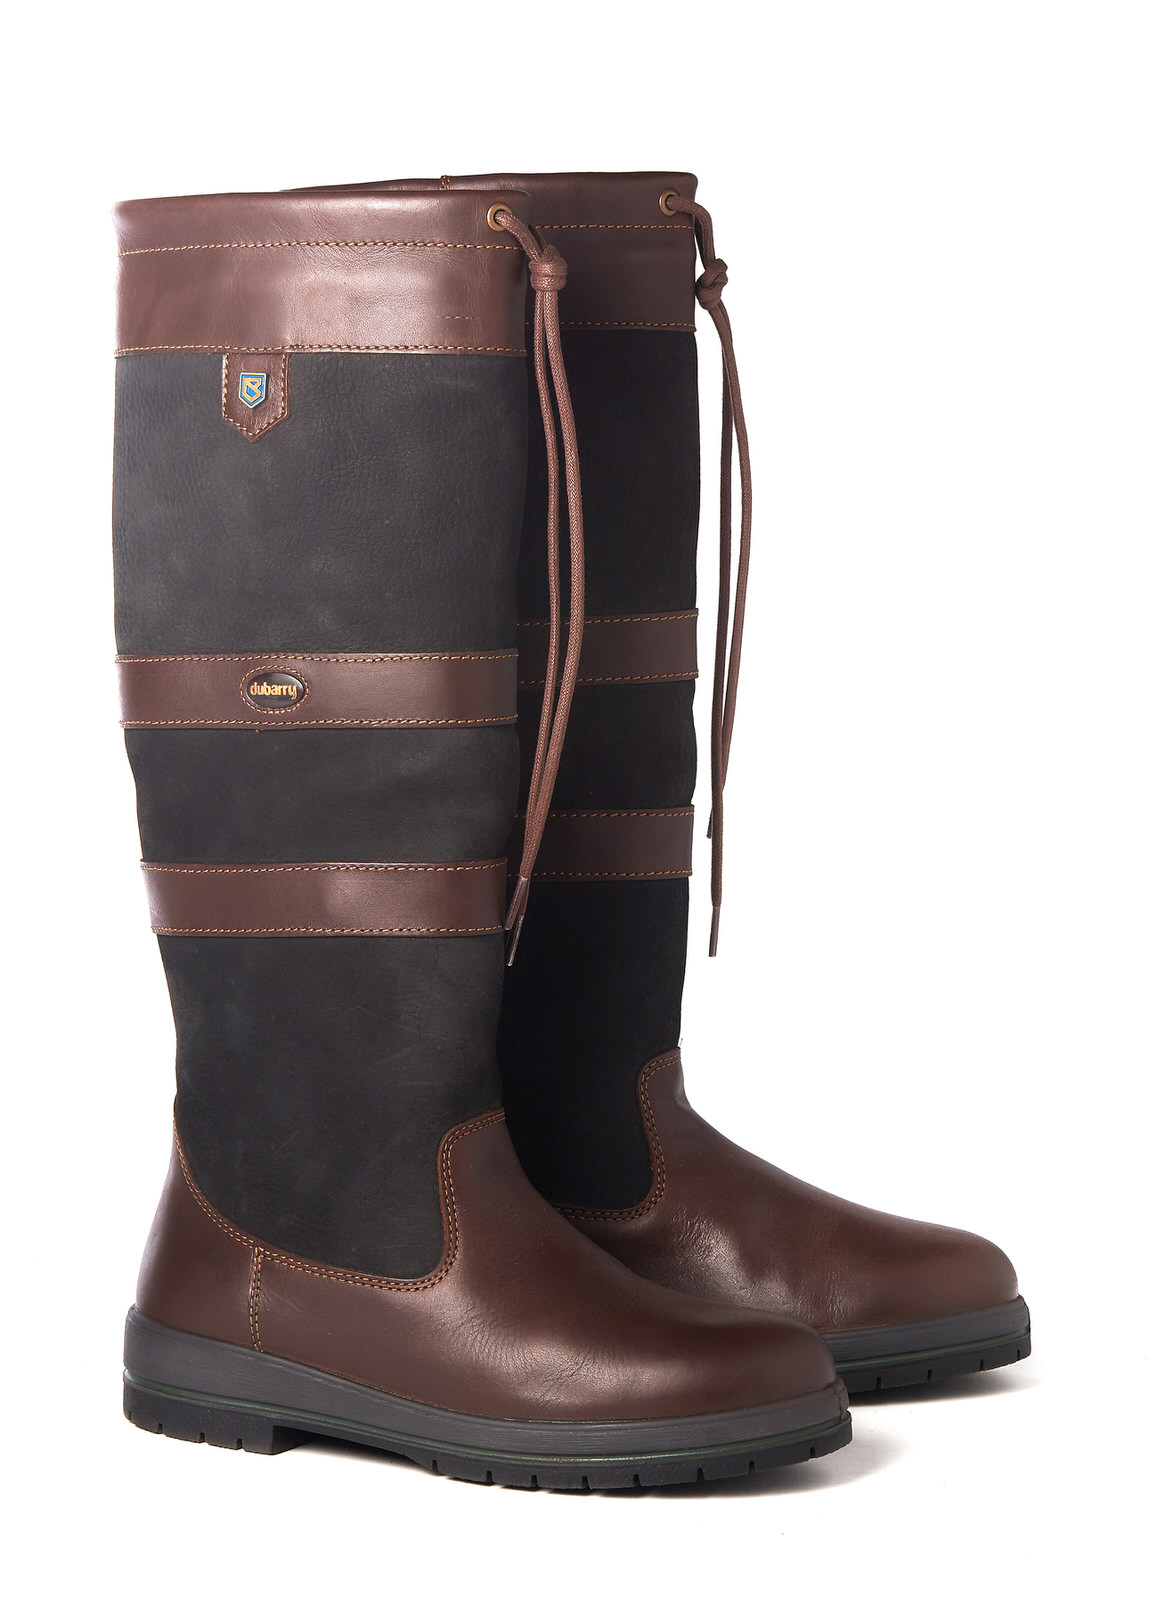 Galway_ExtraFit?_Country_Boot_Black/Brown_Image_1